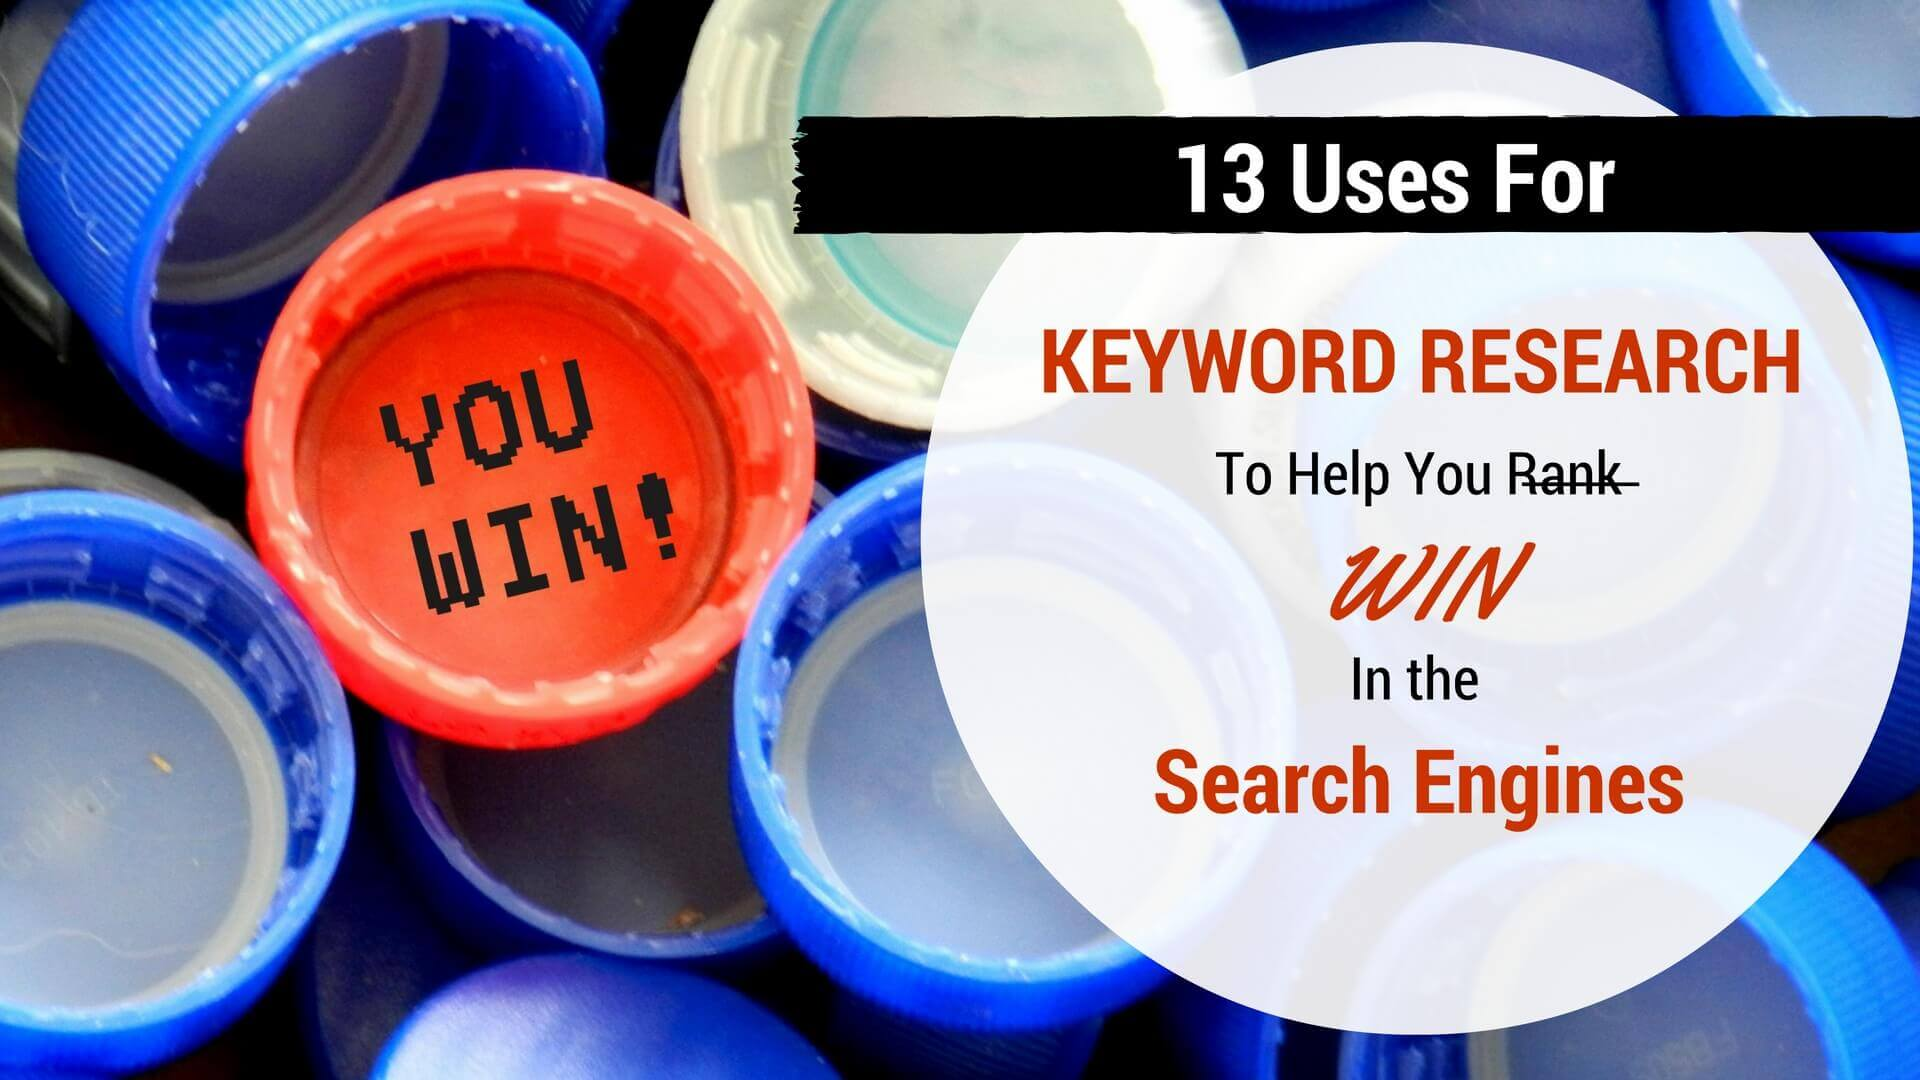 uses-for-keyword-research-sel-1